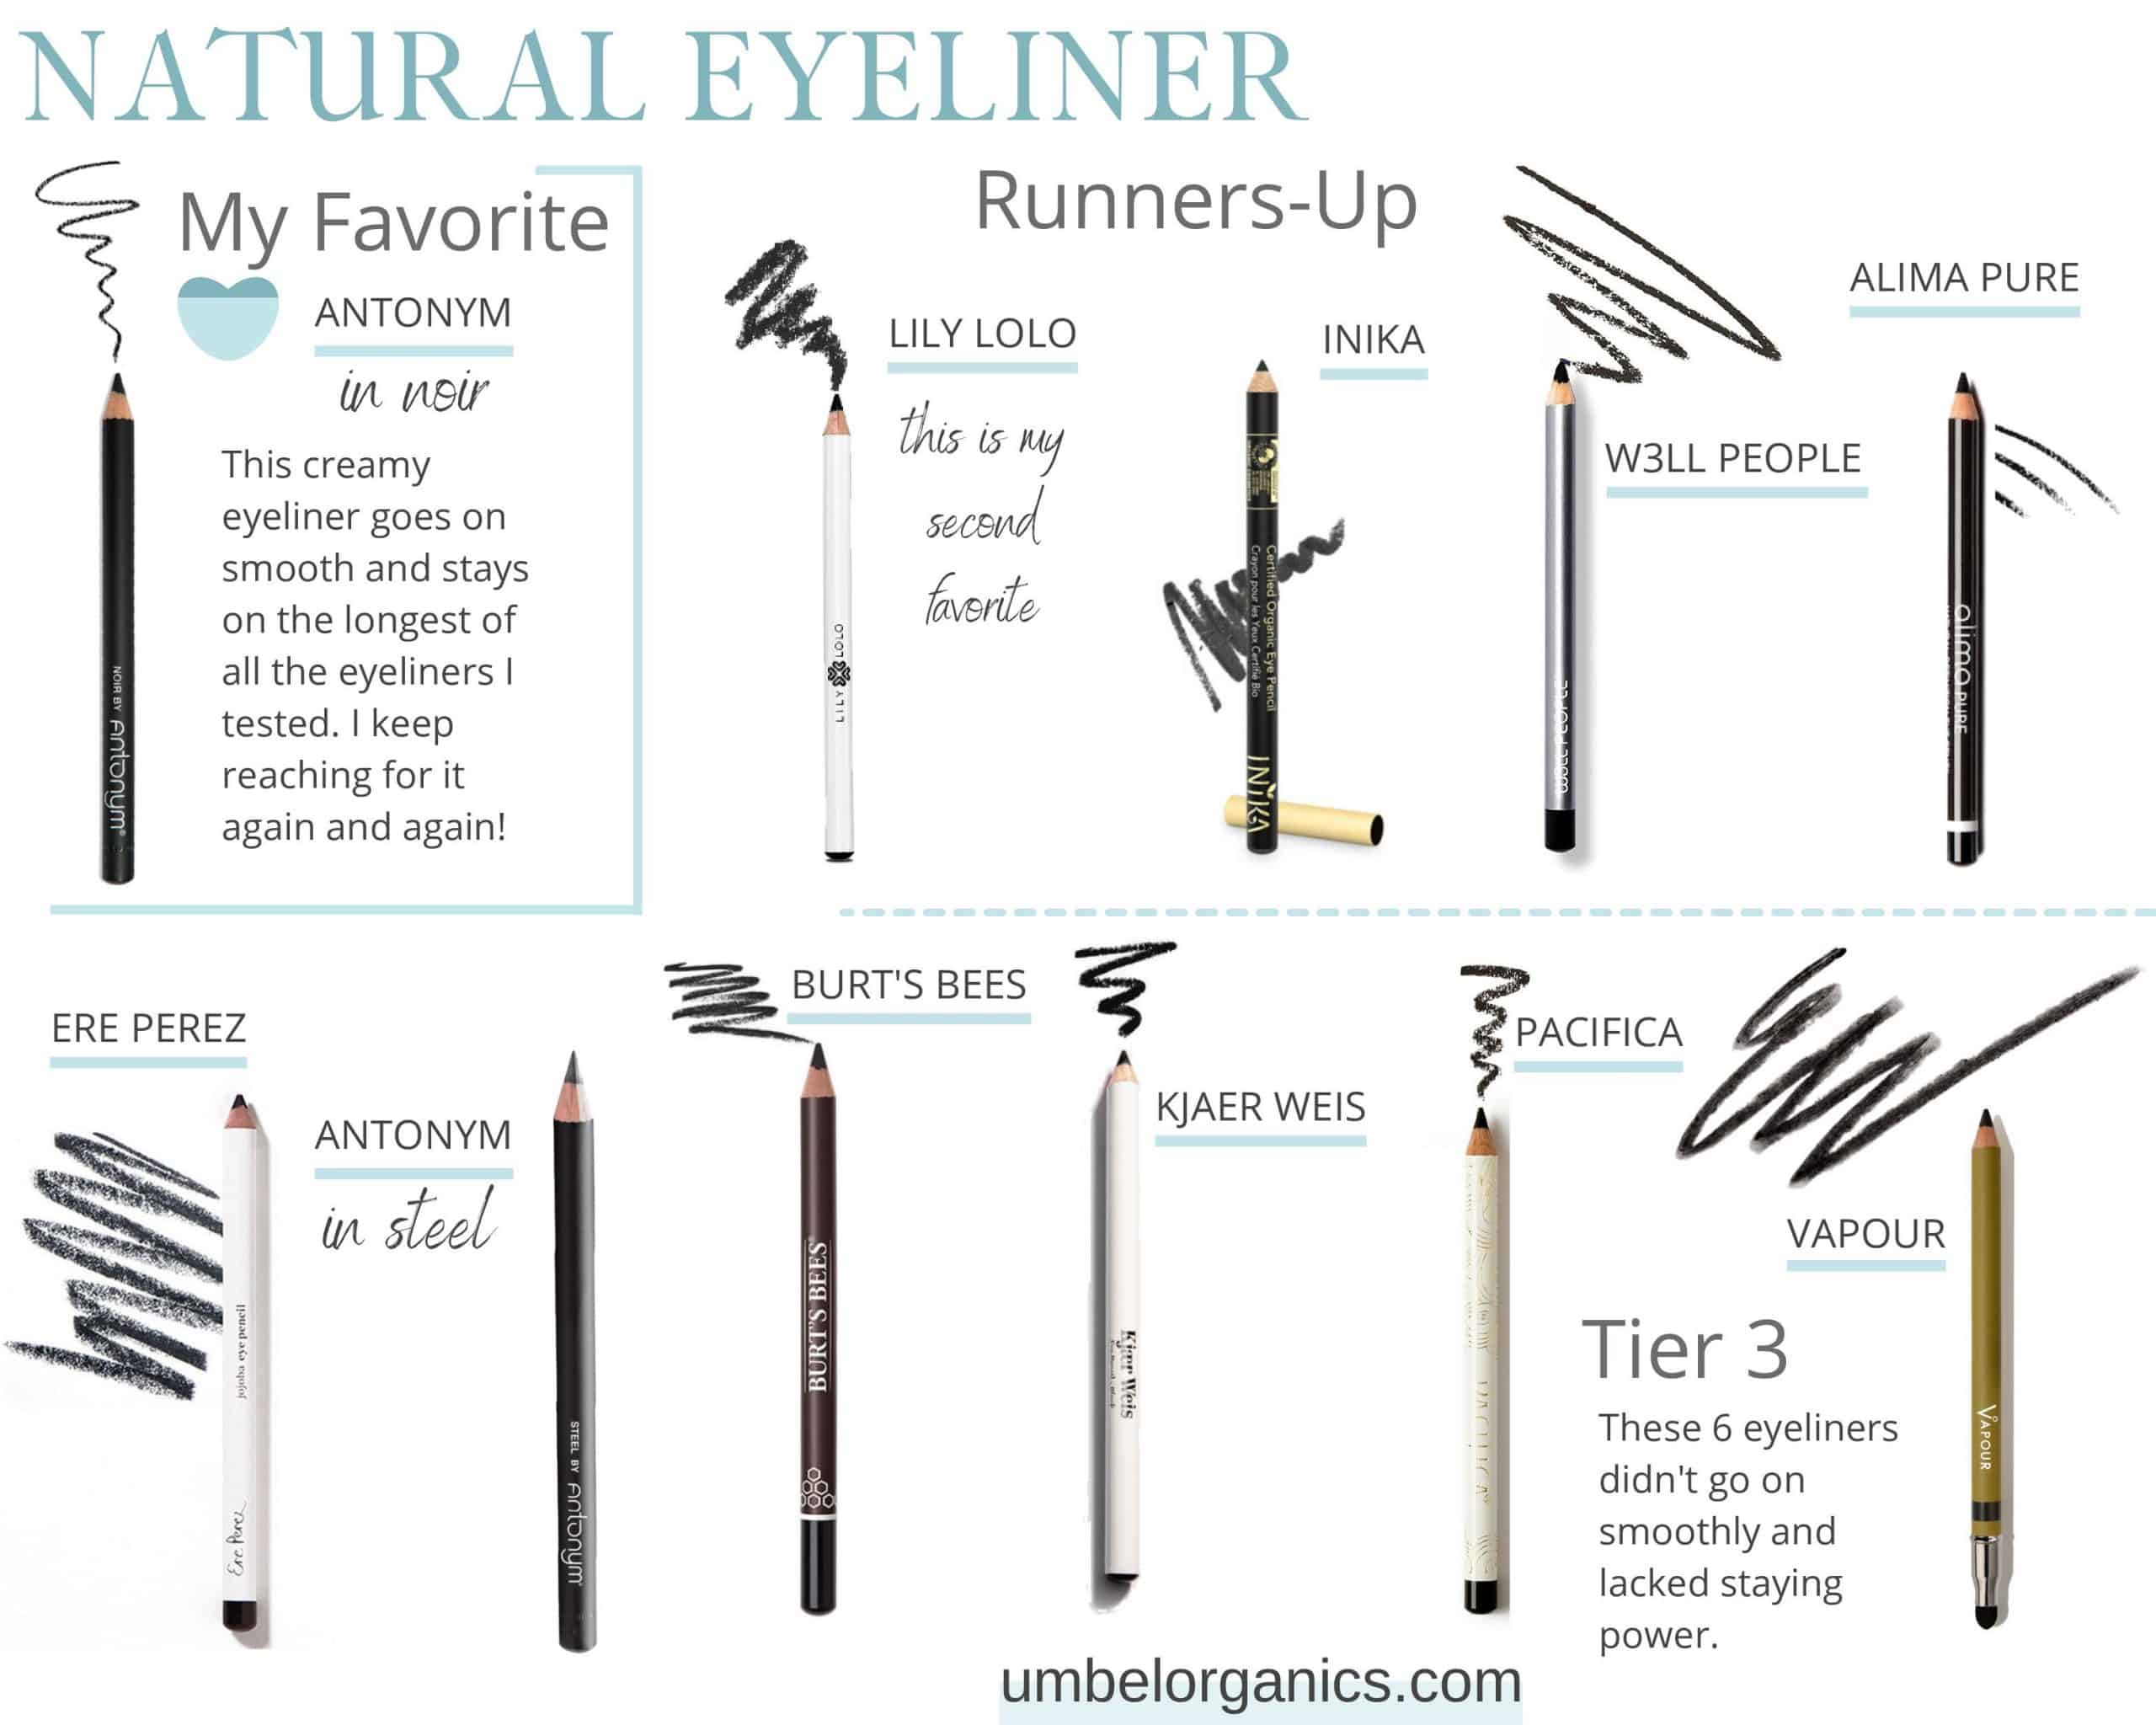 Favorite natural eyeliner plus runners-up